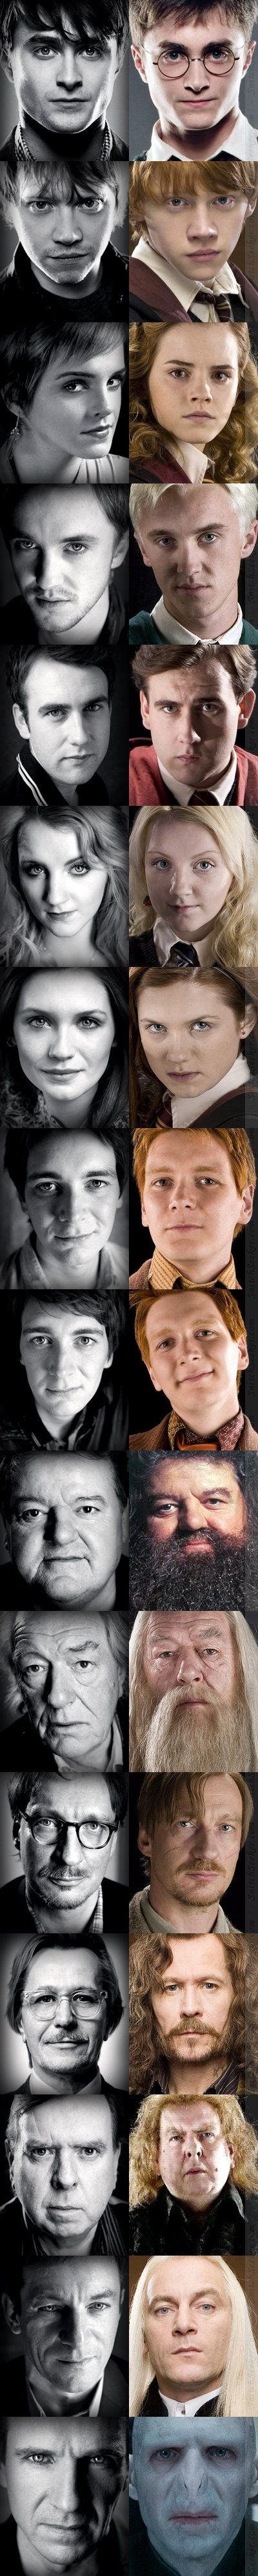 Harry Potter Actors.. As themselves and their characters